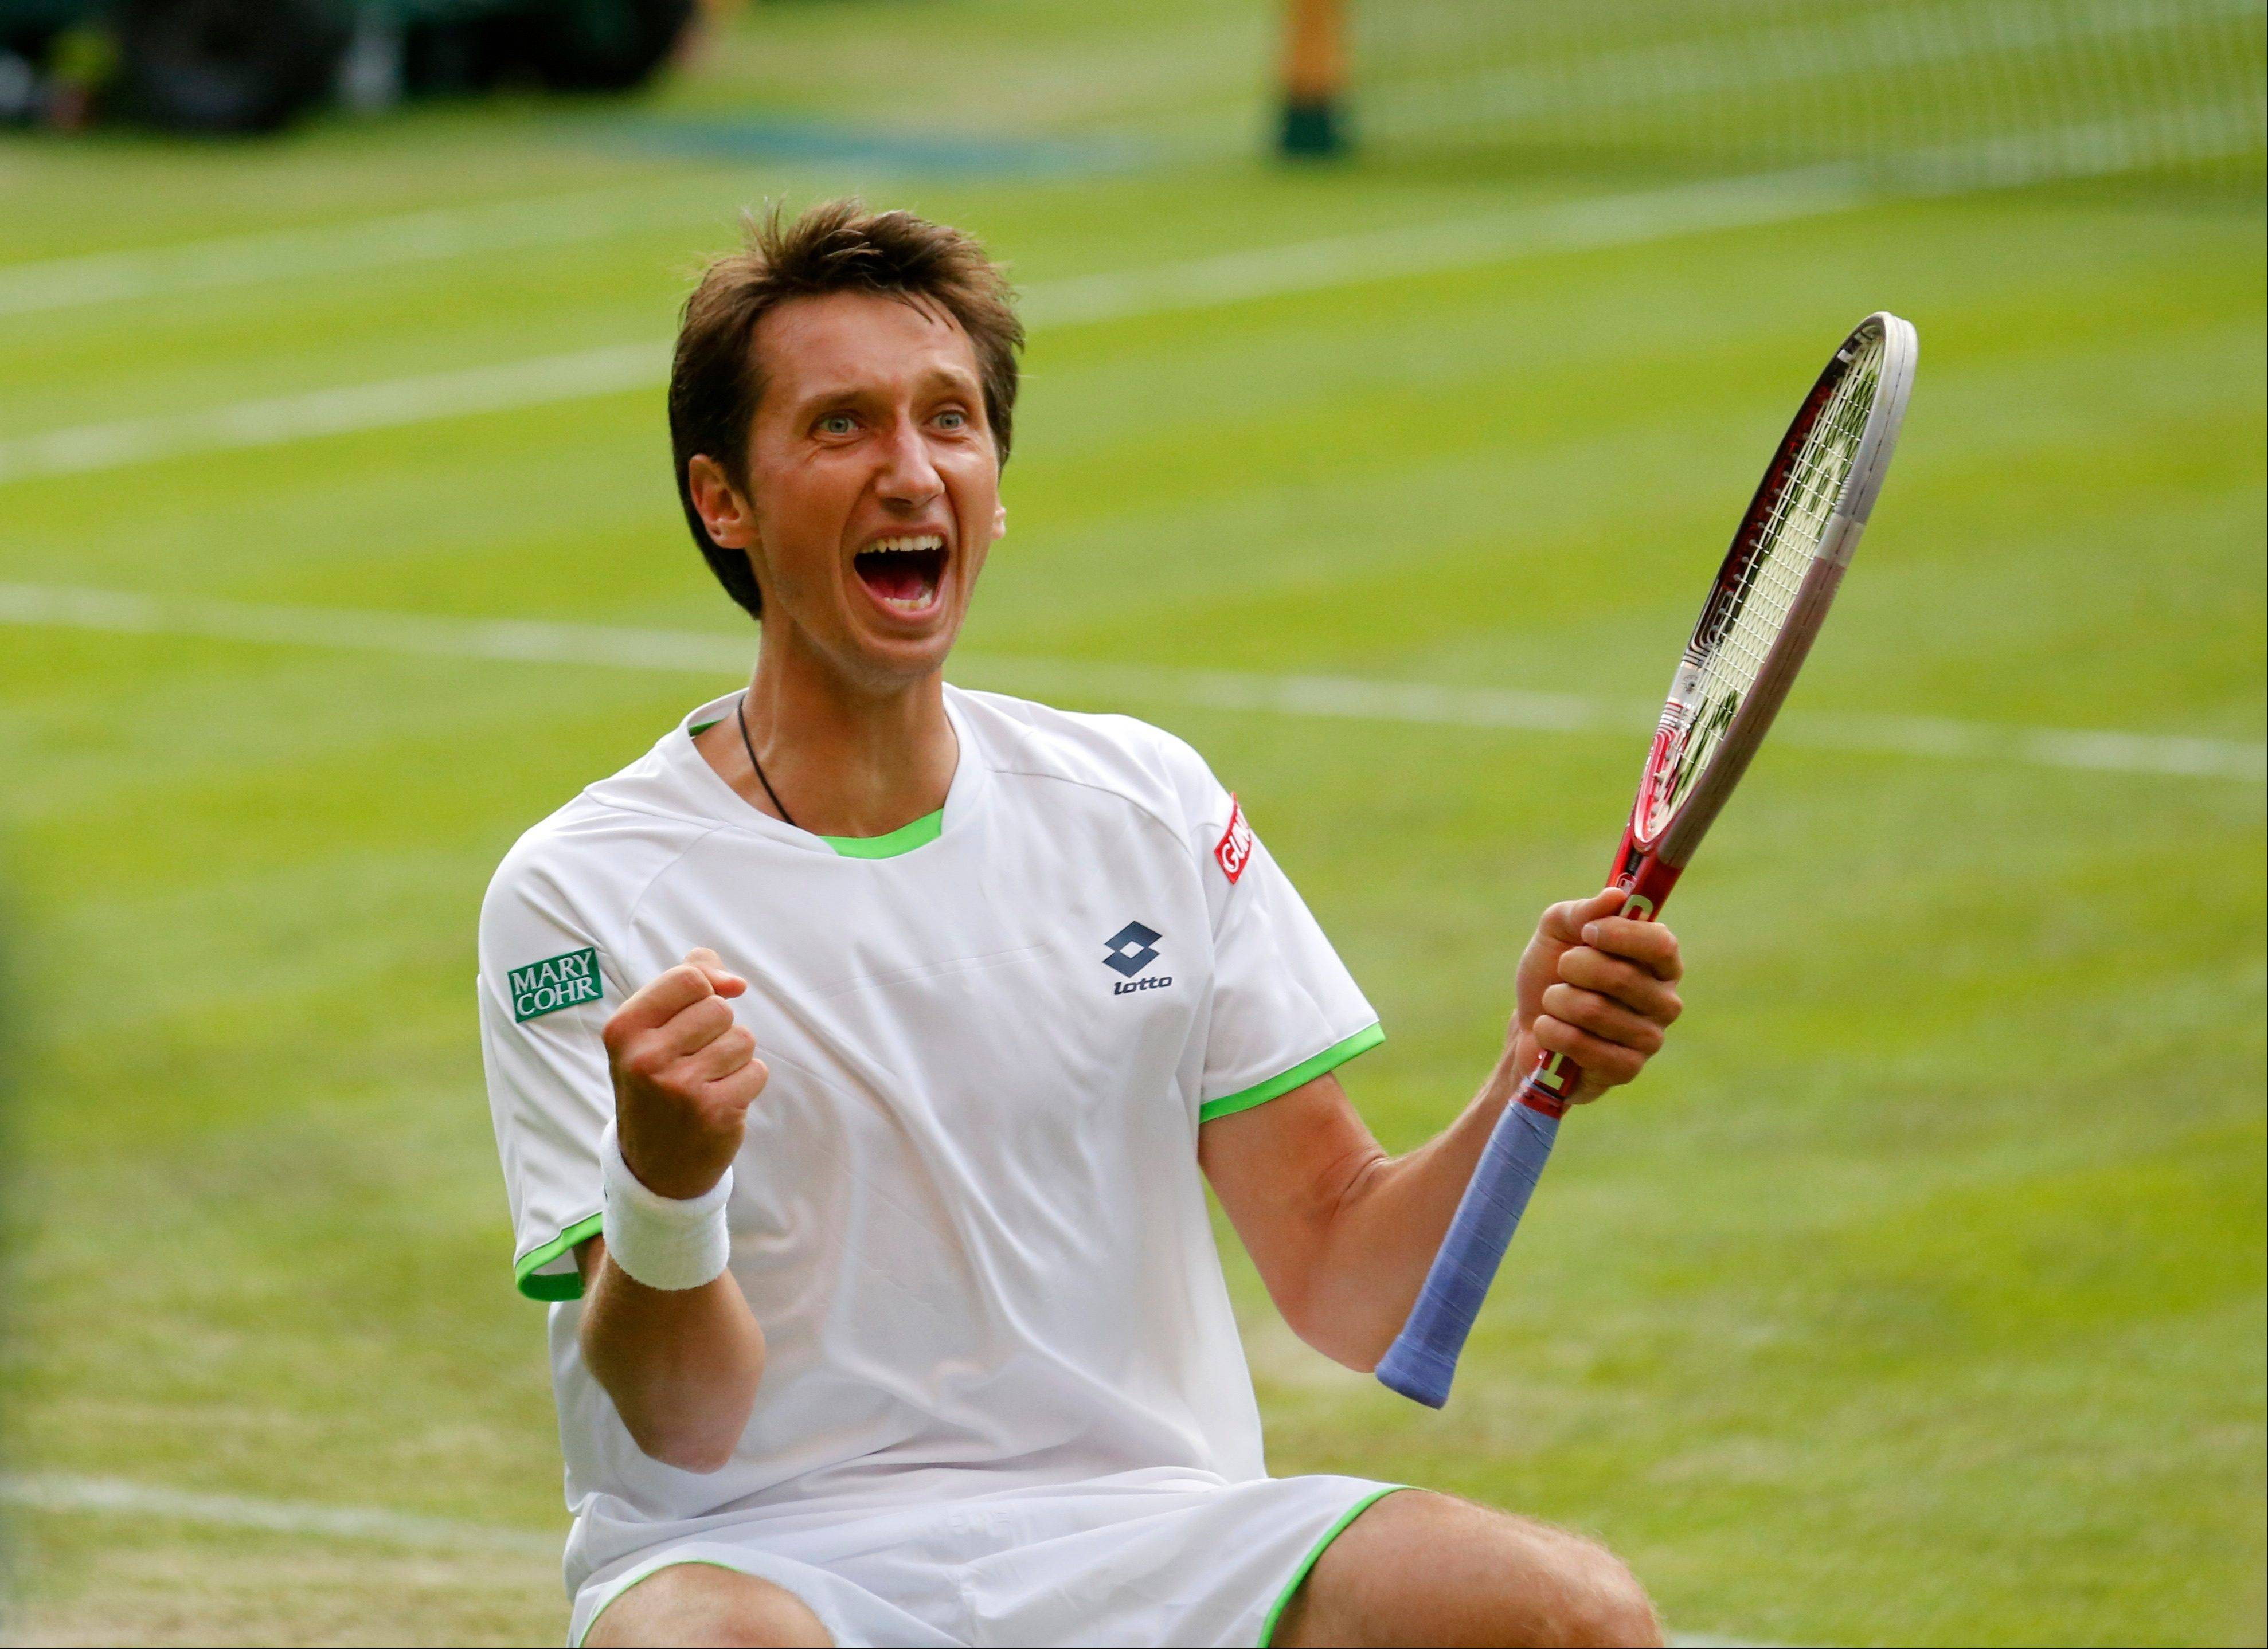 Sergiy Stakhovsky of Ukraine reacts as he wins against Roger Federer of Switzerland in their Men's second round singles match at the All England Lawn Tennis Championships in Wimbledon, London, Wednesday, June 26, 2013.